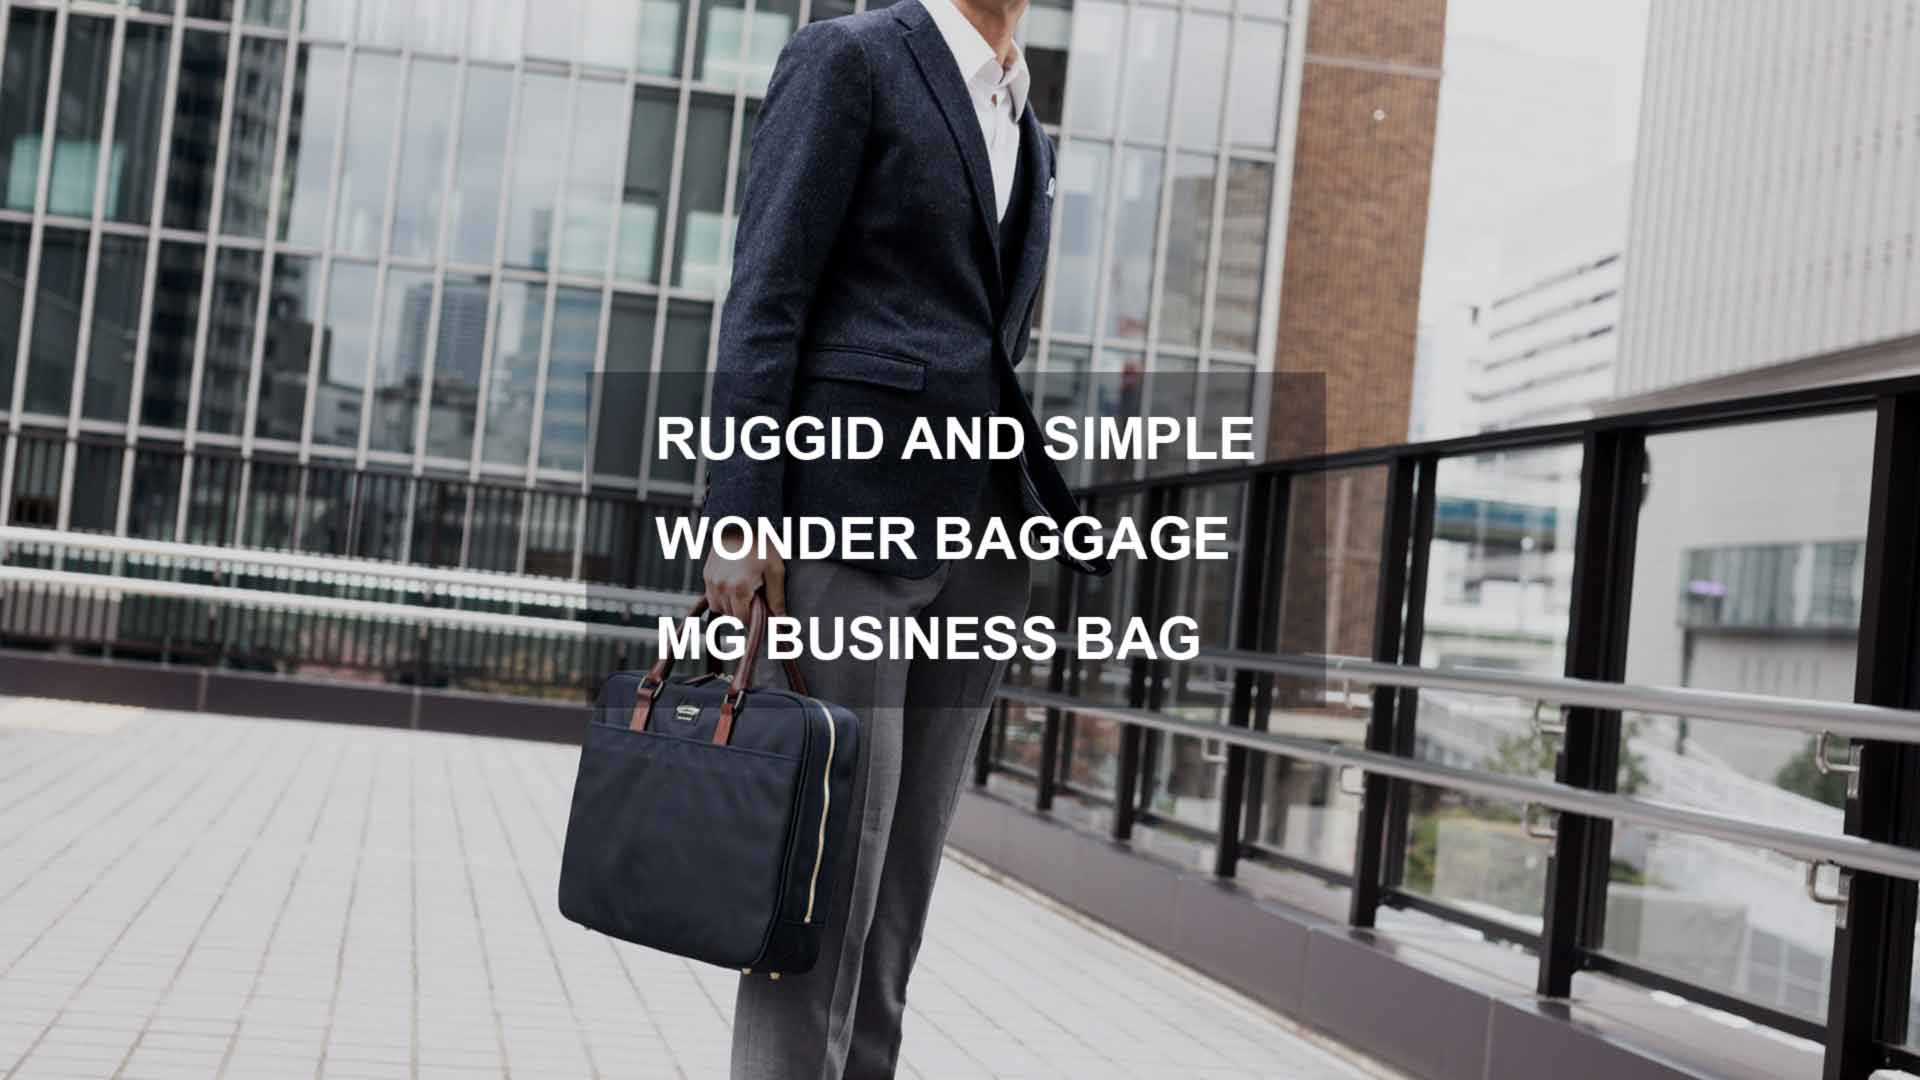 MG BUSINESS BAG特設ページ